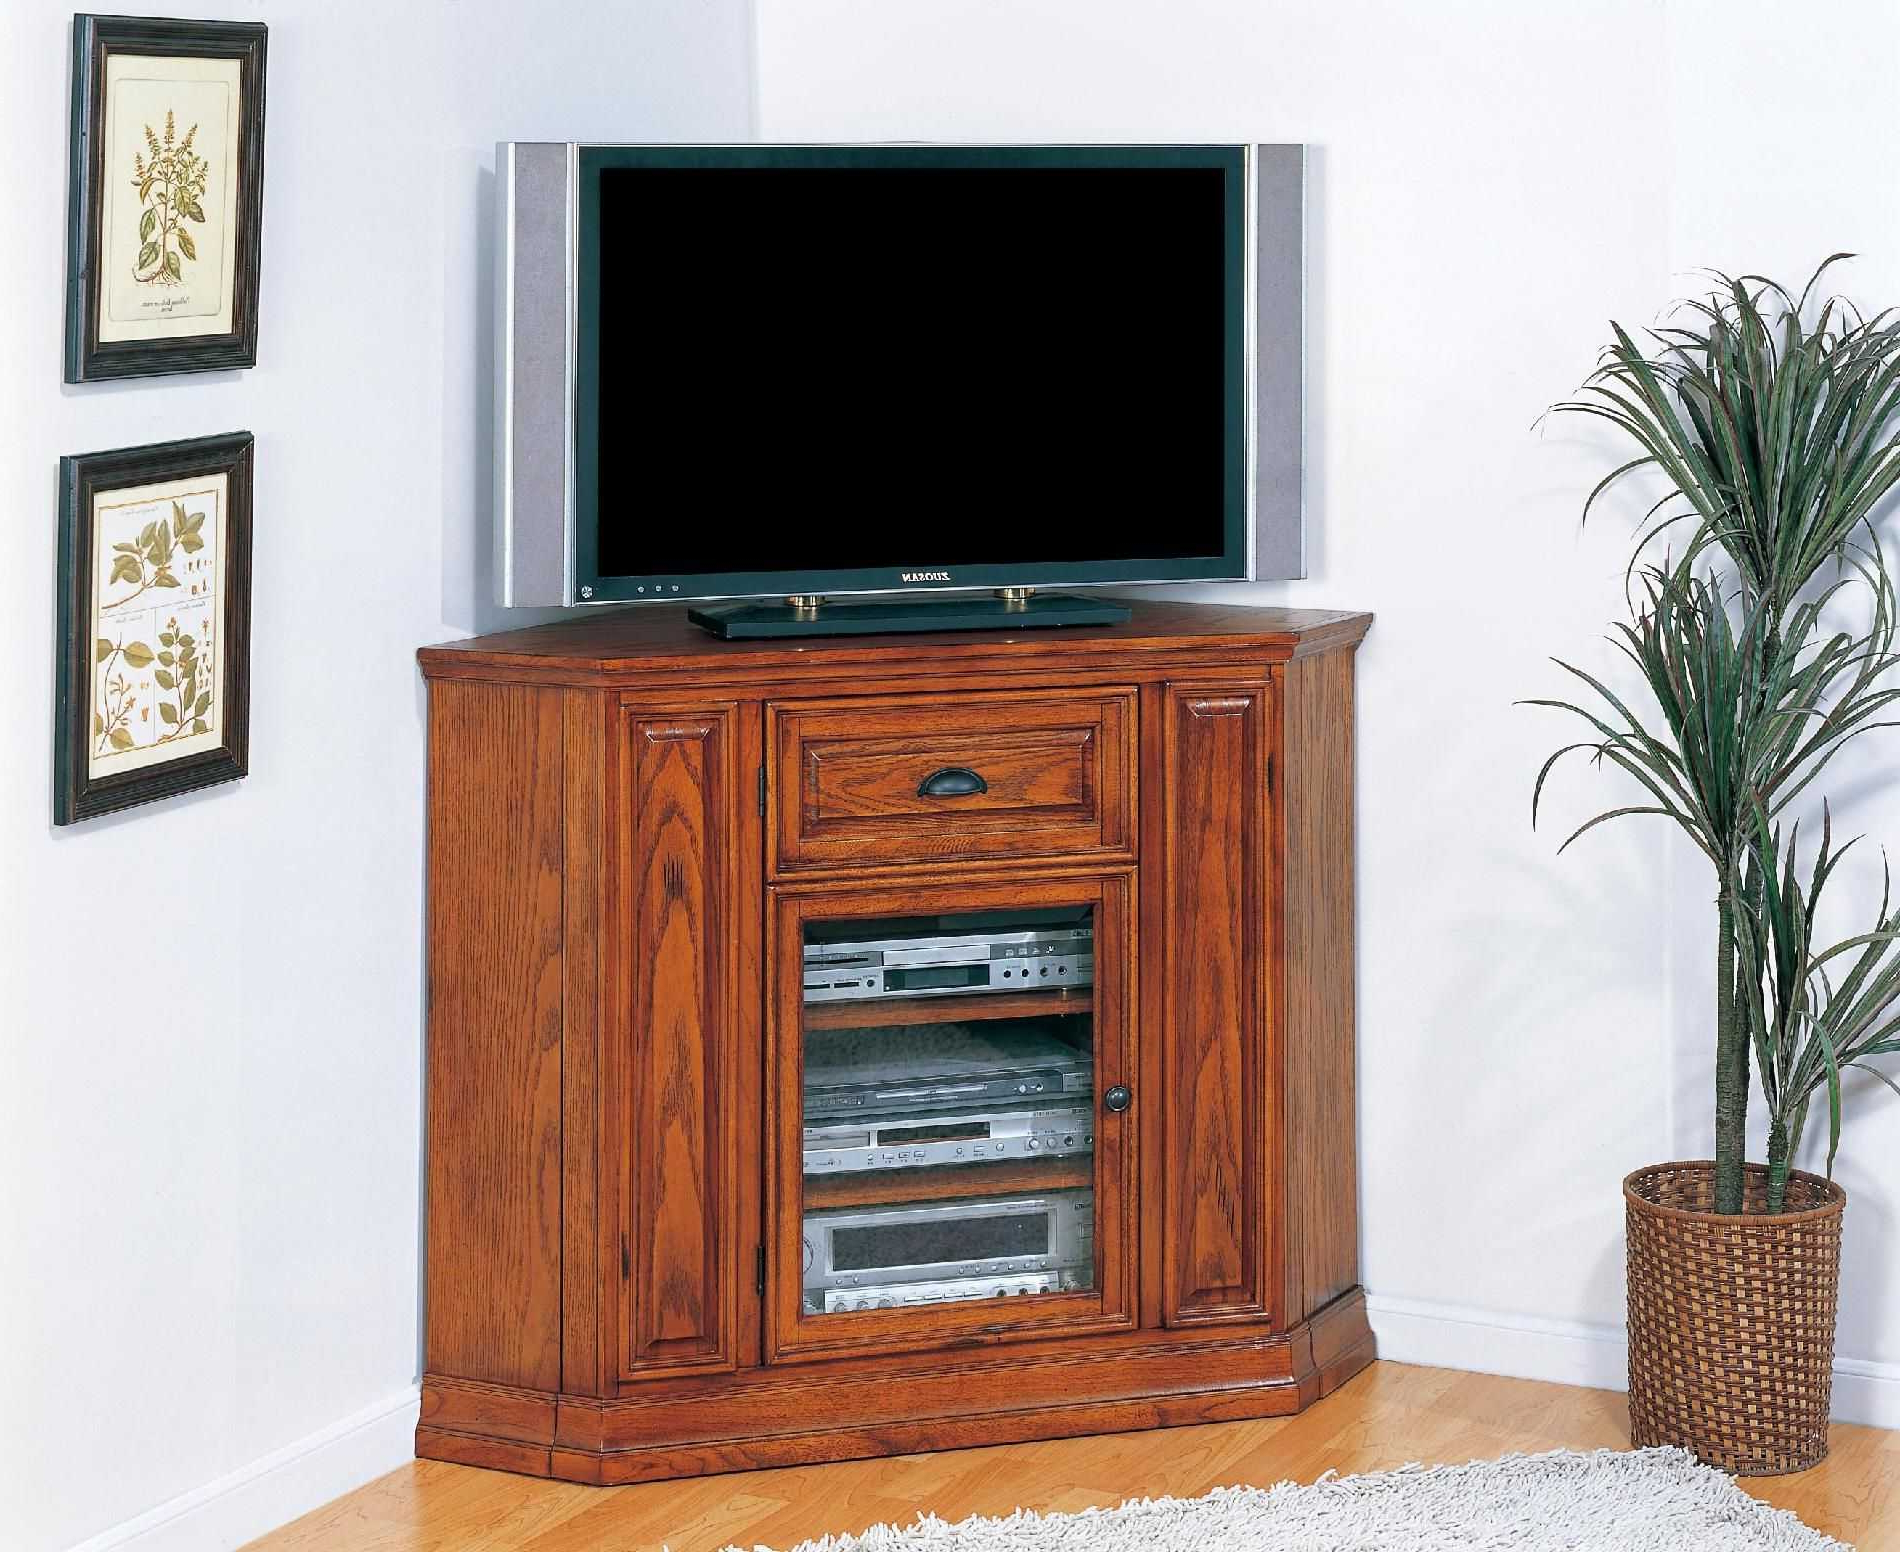 Favorite Corner Entertainment Center 40 Inch White Tv Stand Ikea Hemnes 70 With Regard To 40 Inch Corner Tv Stands (View 7 of 20)